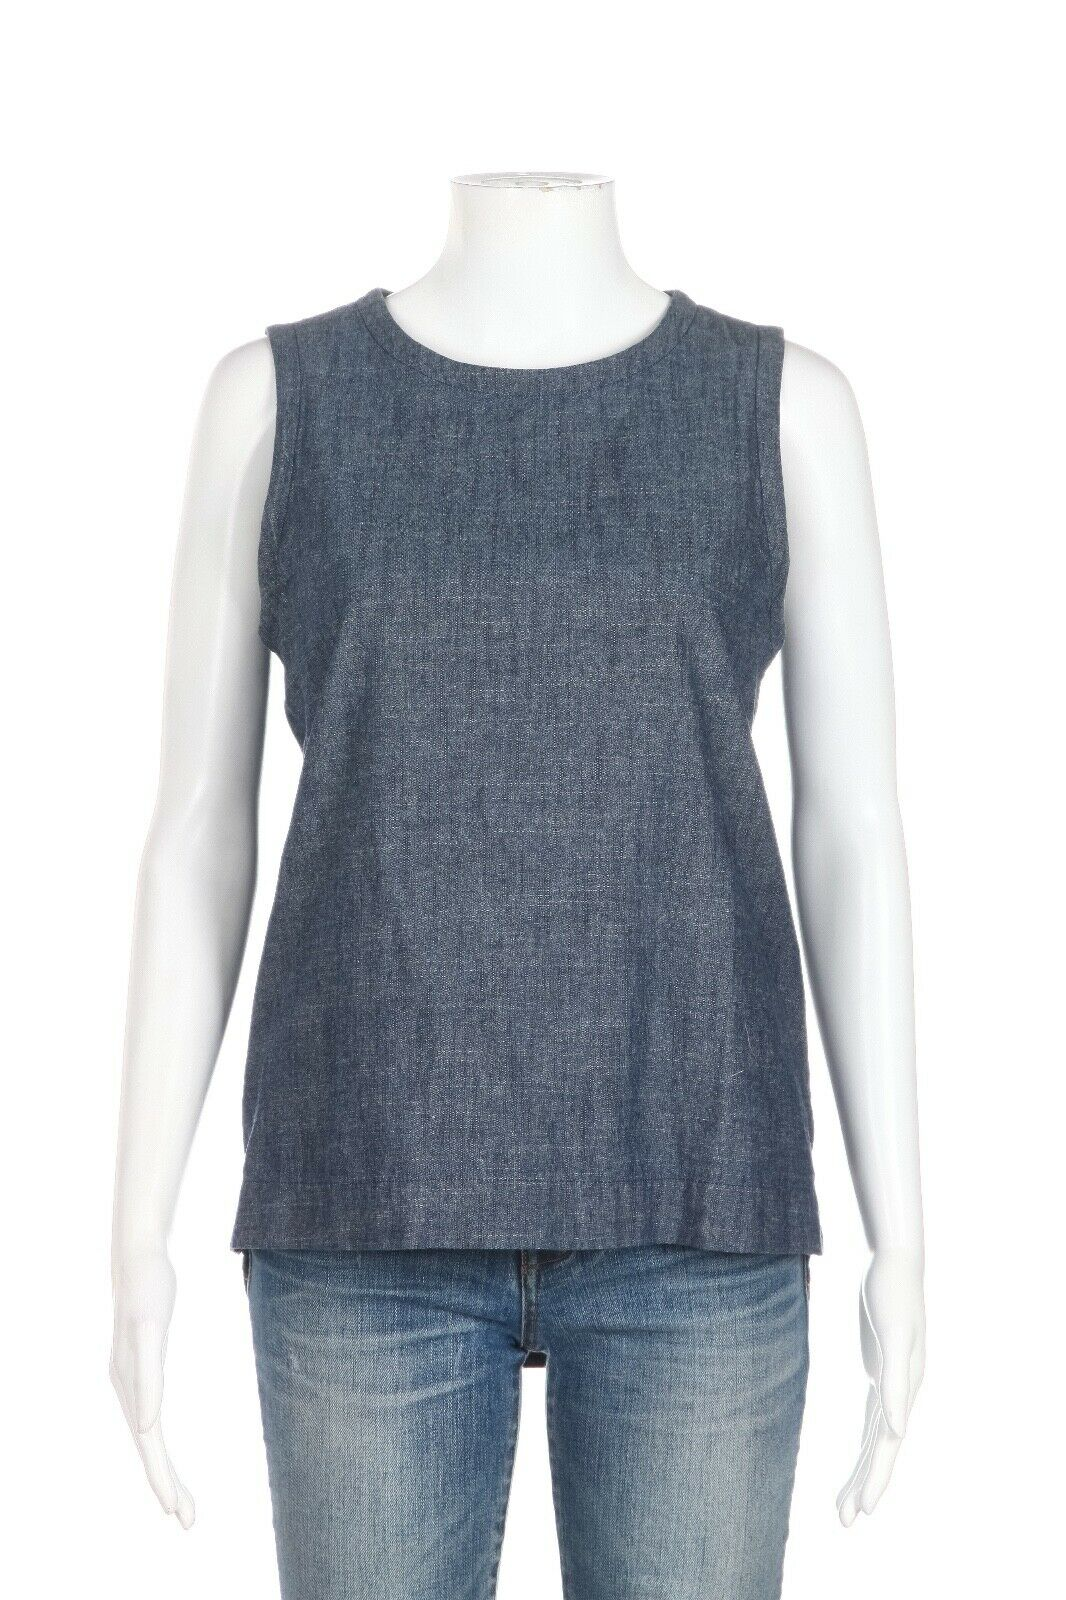 KATE SPADE Saturday Sleeveless Chambray Top Size XS